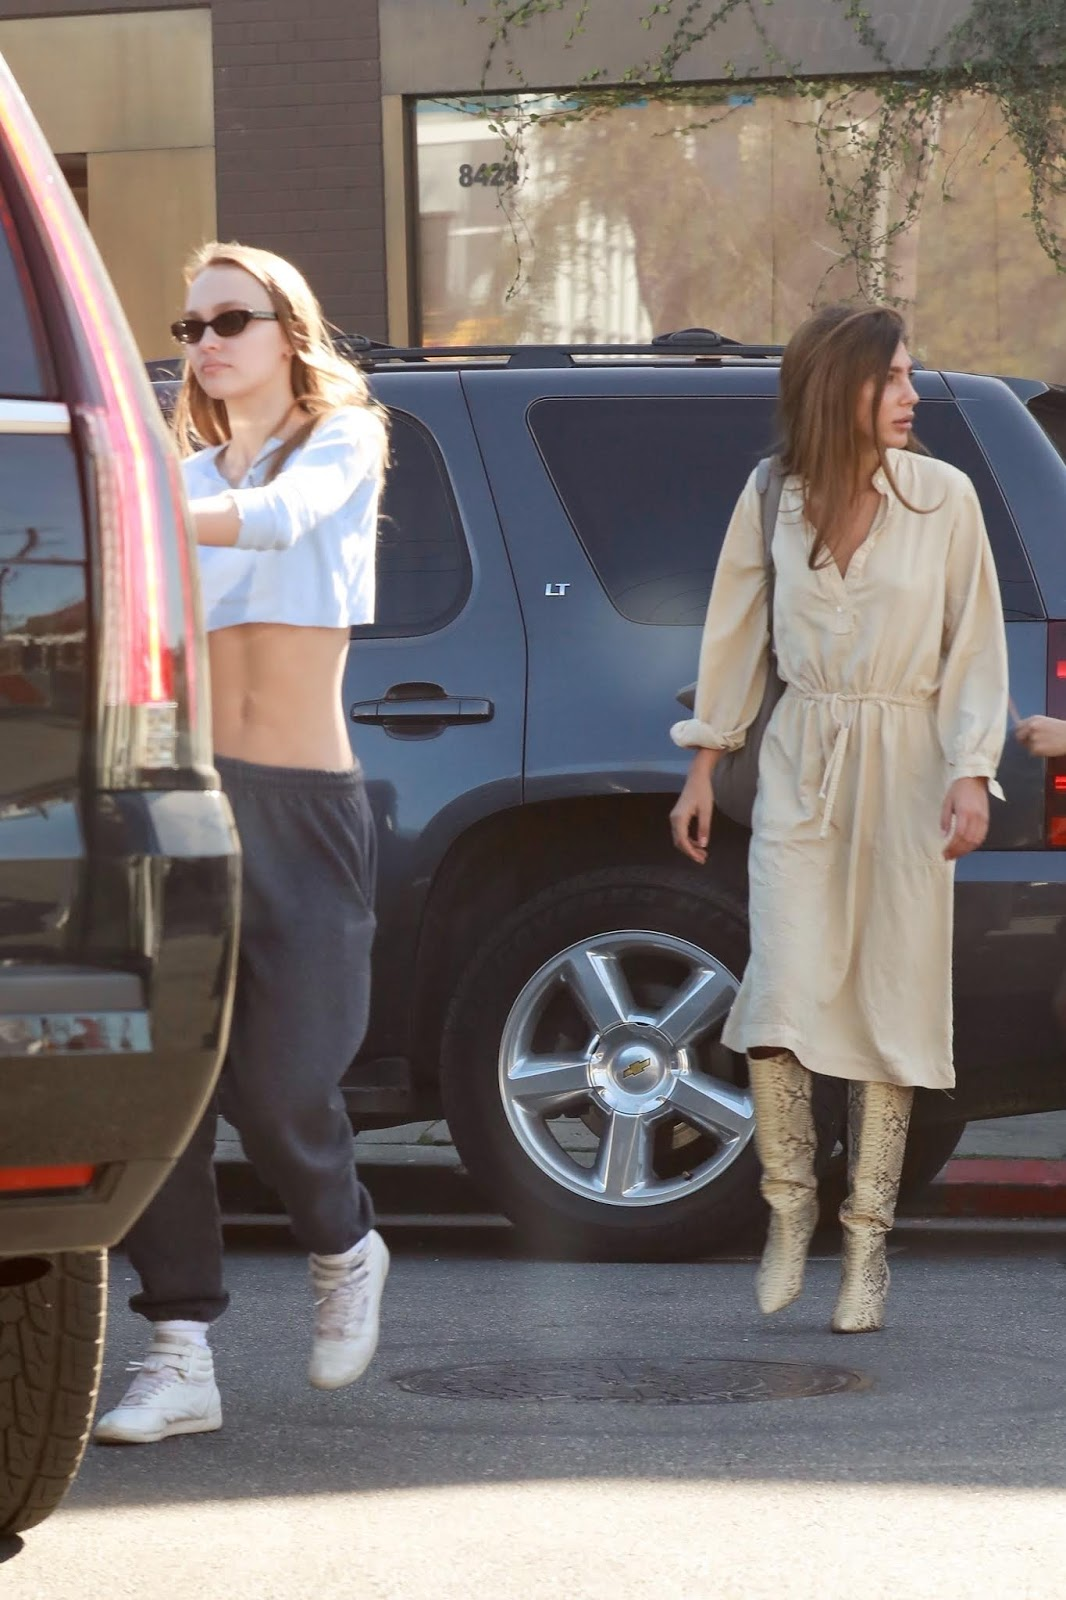 Lily-Rose Depp shows off her model figure through extremely short crop top - 01/27/2019